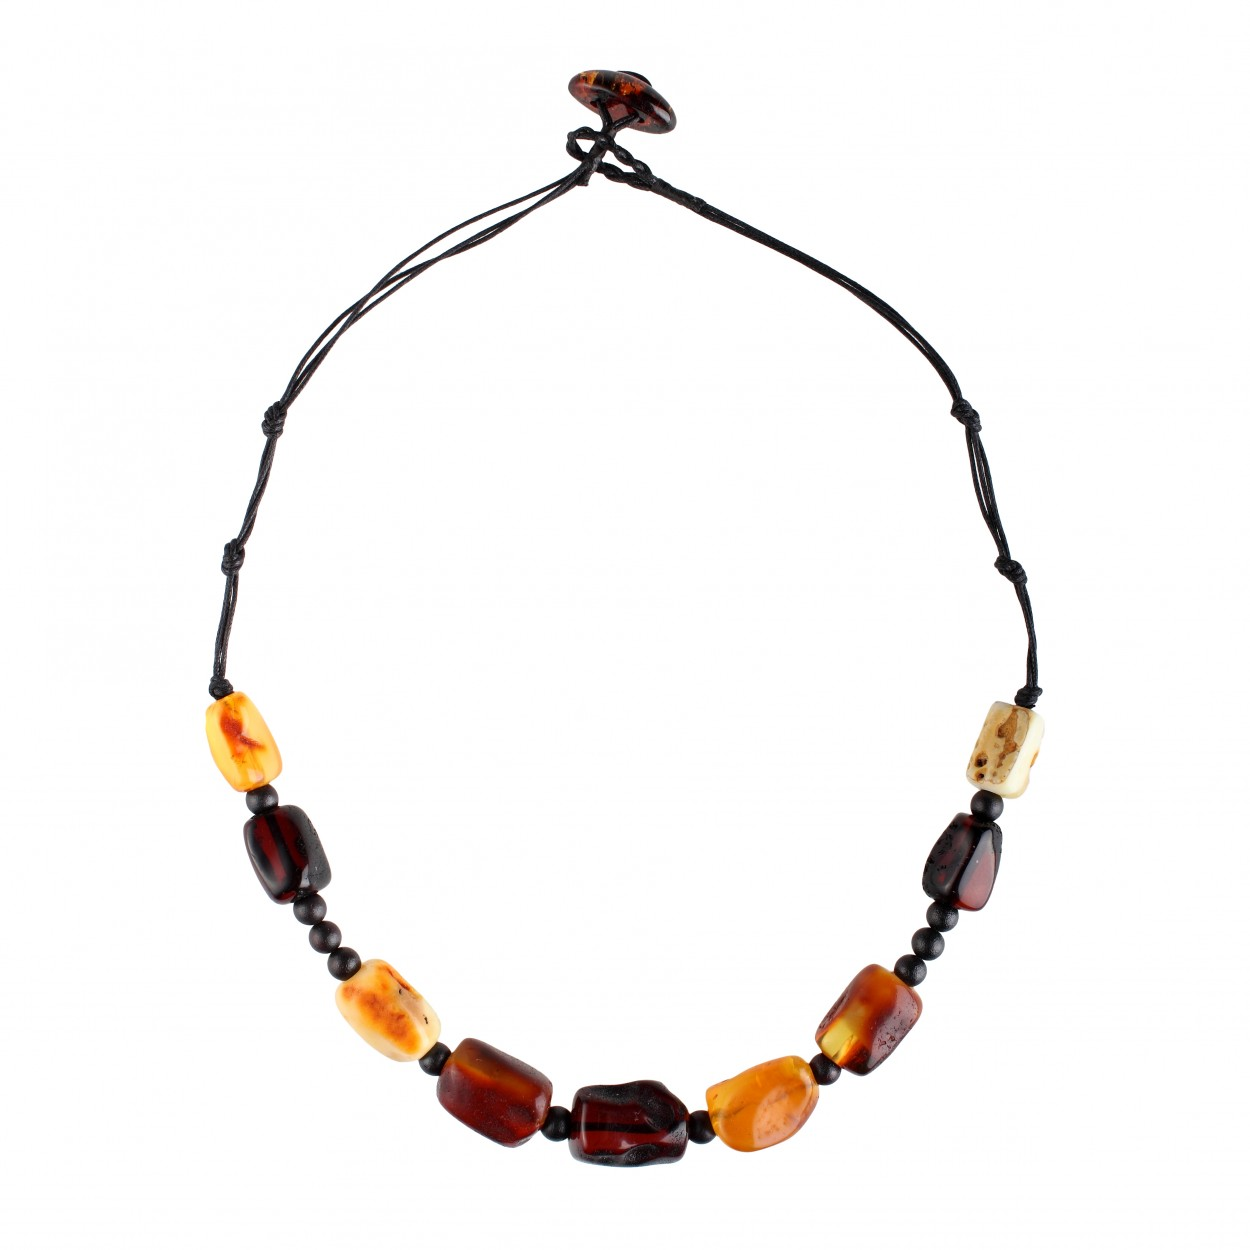 Rustic Charm Amber Necklace